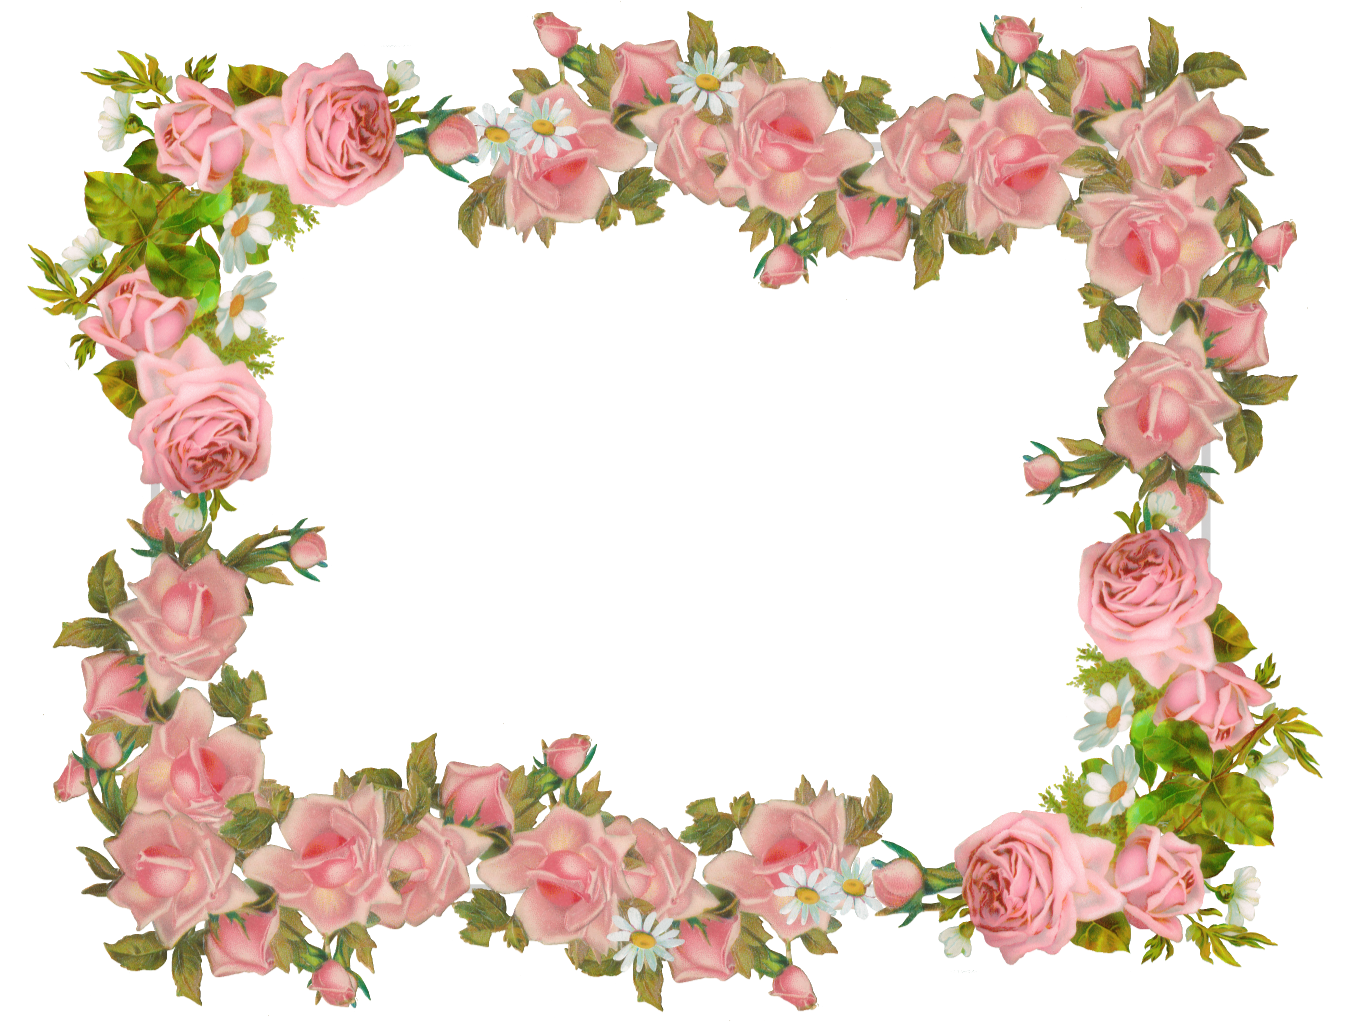 Free Digital Vintage Rose Frame And Scrapbooking Paper Rosenrahmen Freebie Meinlilapark Diy Printables And Downloads Rose Frame Vintage Roses Floral